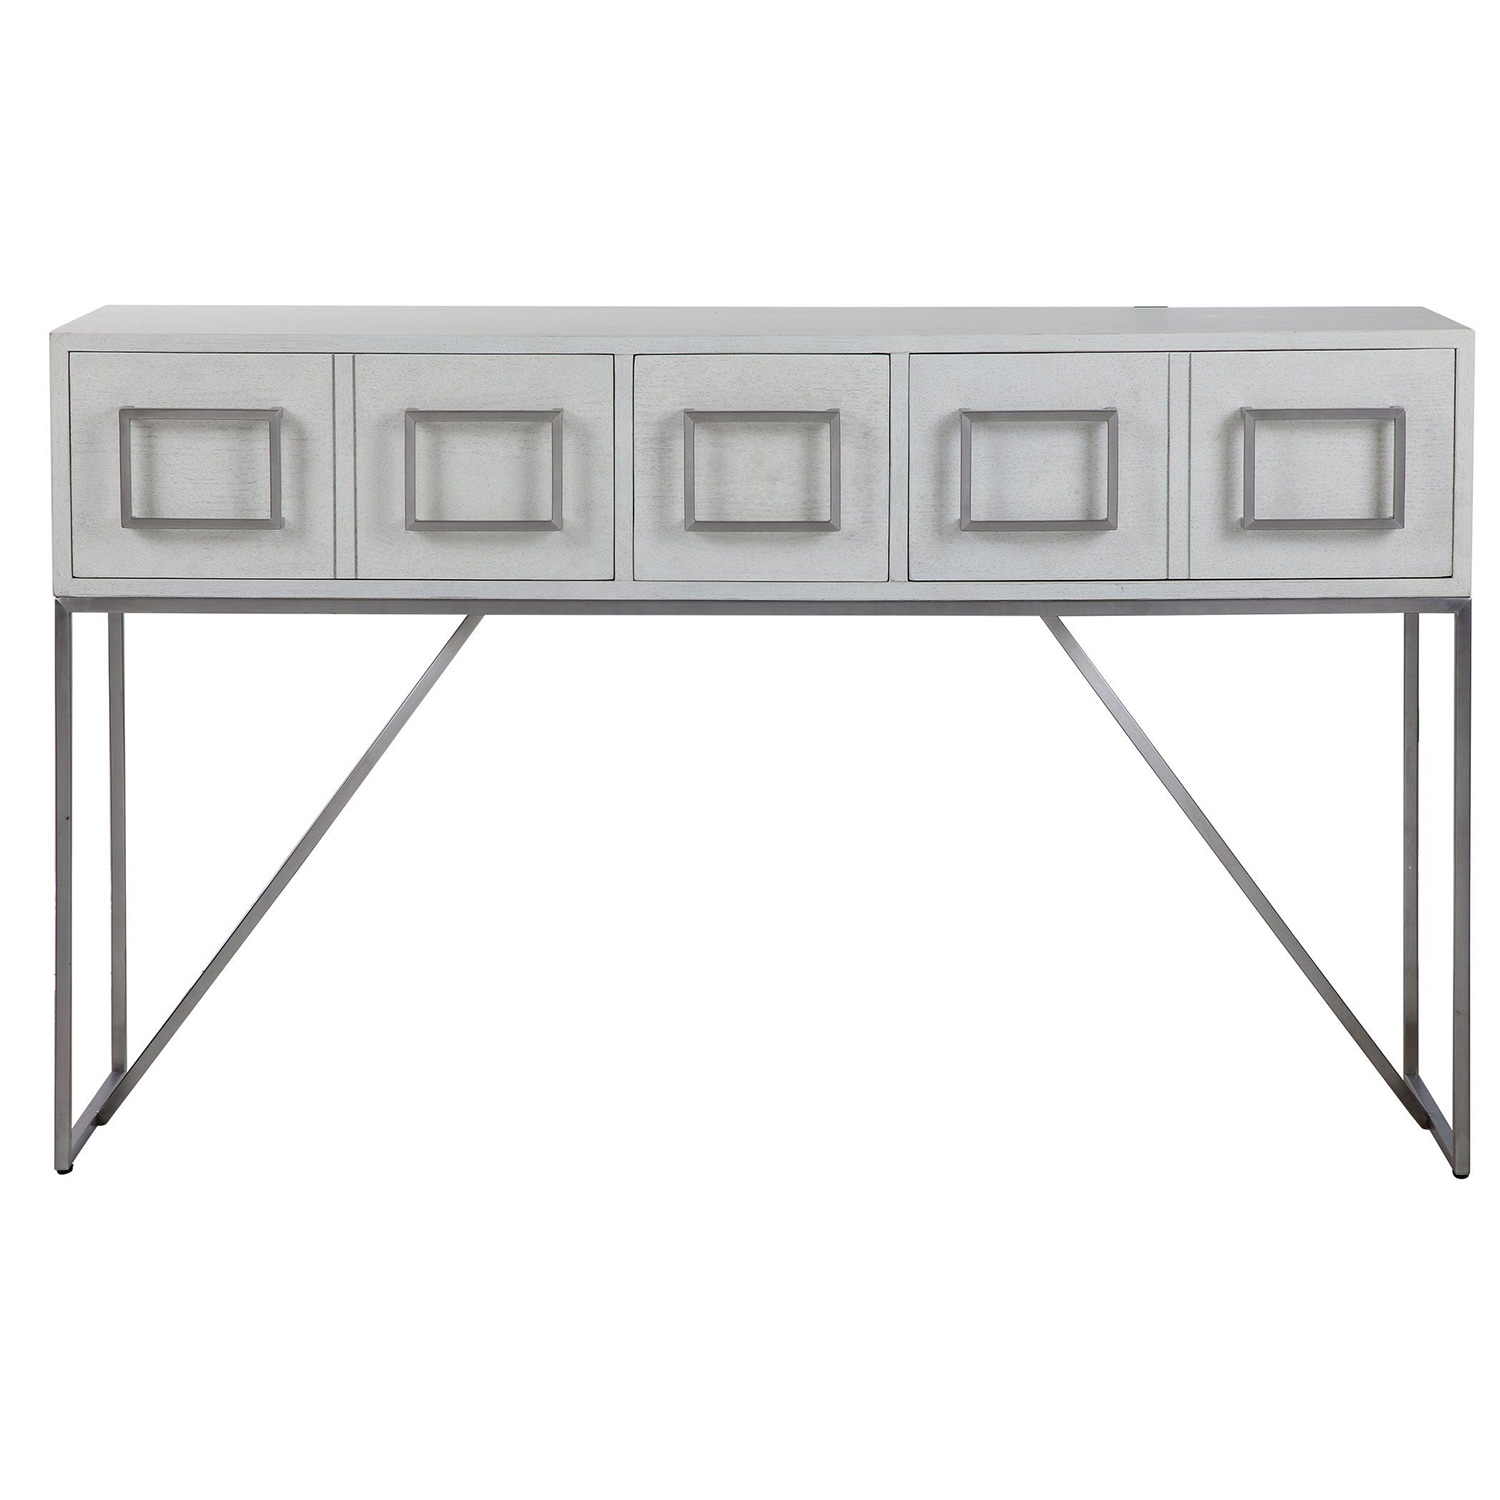 Uttermost Abaya Console Table - White